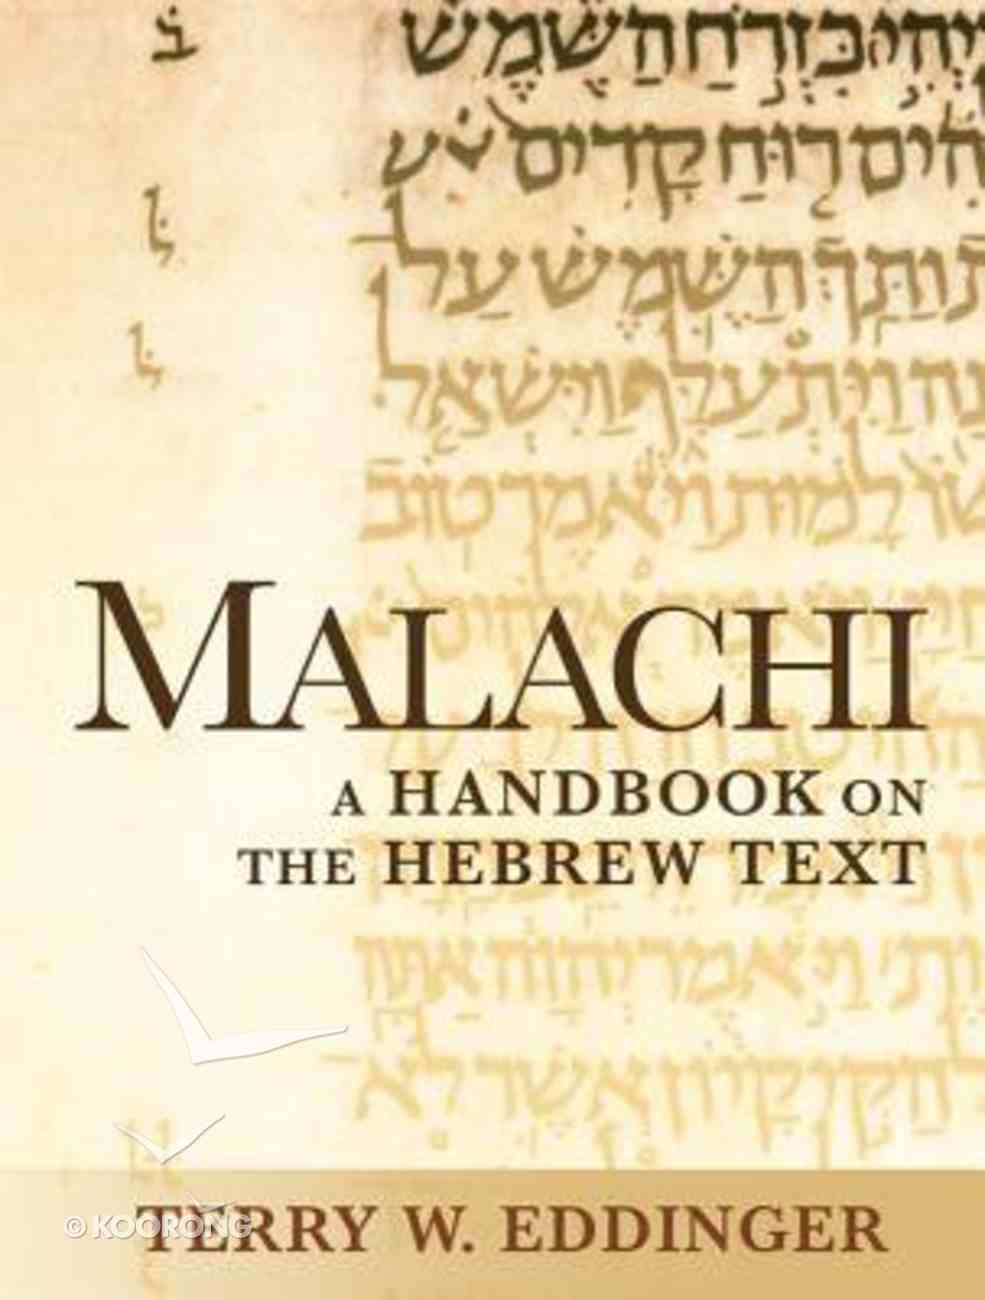 Malachi a Handbook of the Biblical Text (Baylor Handbook On The Hebrew Bible Series) Paperback